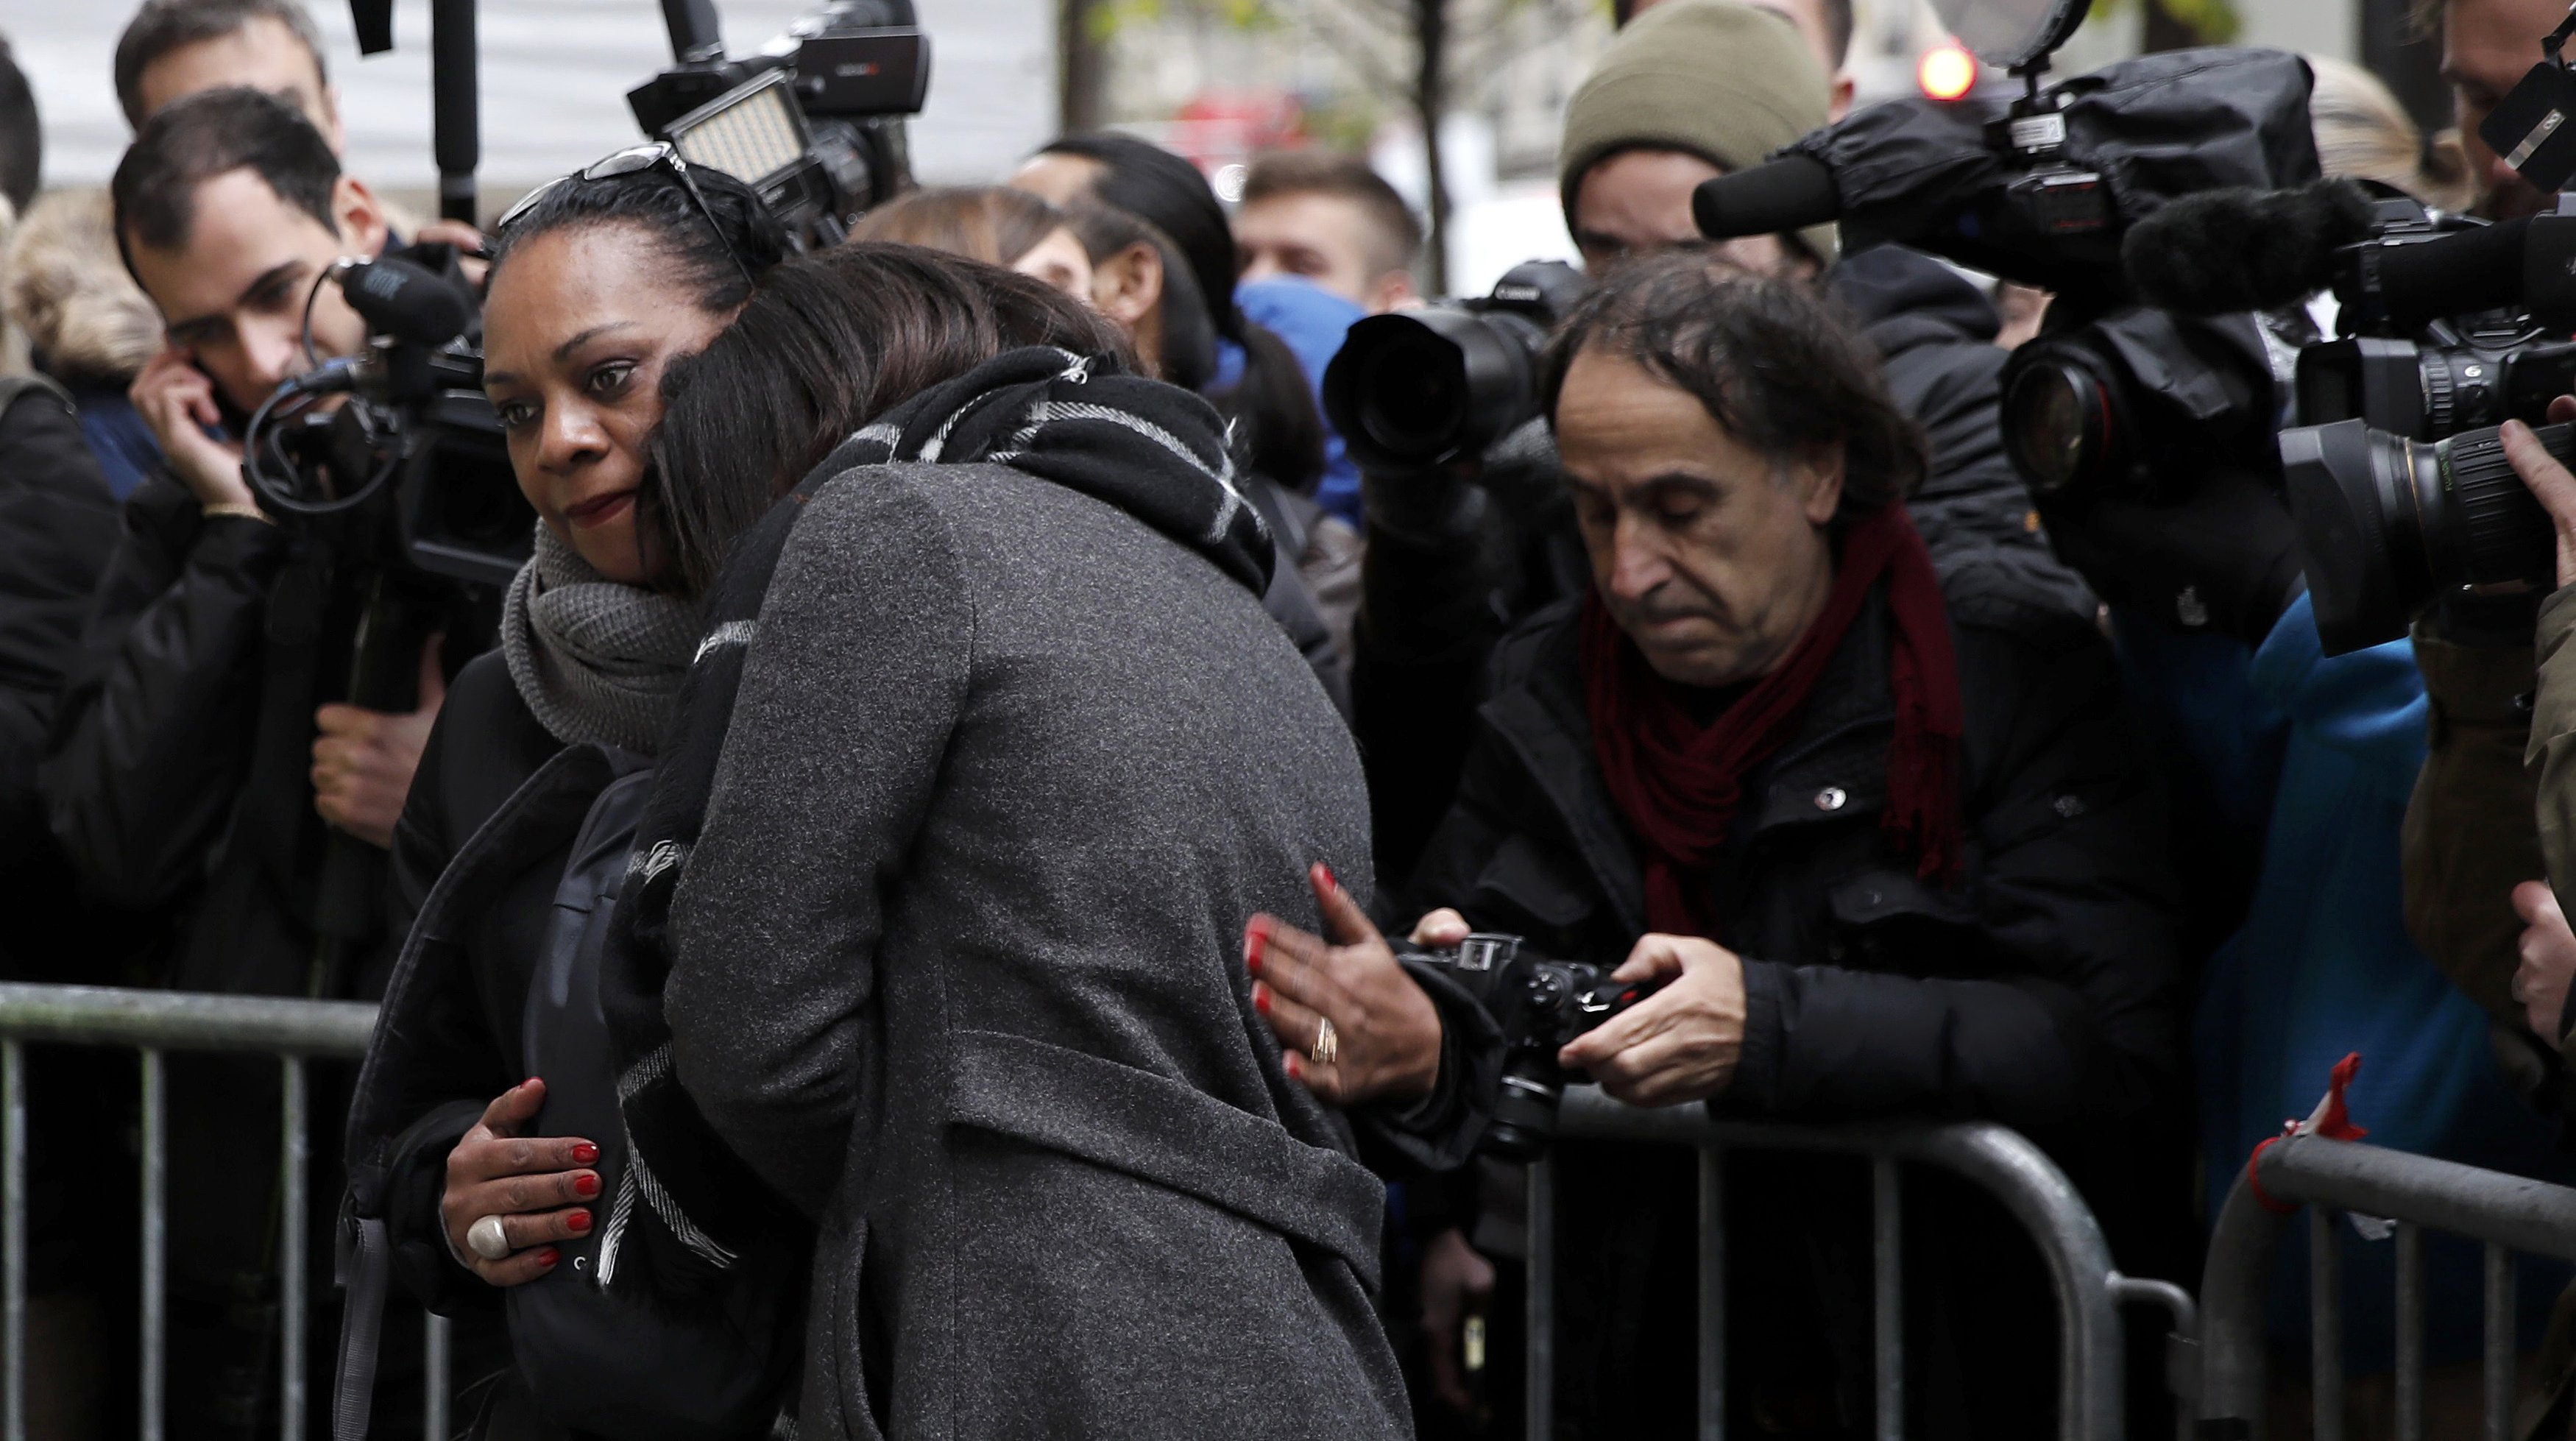 Relatives of the victims gather next to a commemorative plaque unveiled by French President Francois Hollande and Paris Mayor Anne Hidalgo in front of the Bataclan concert hall